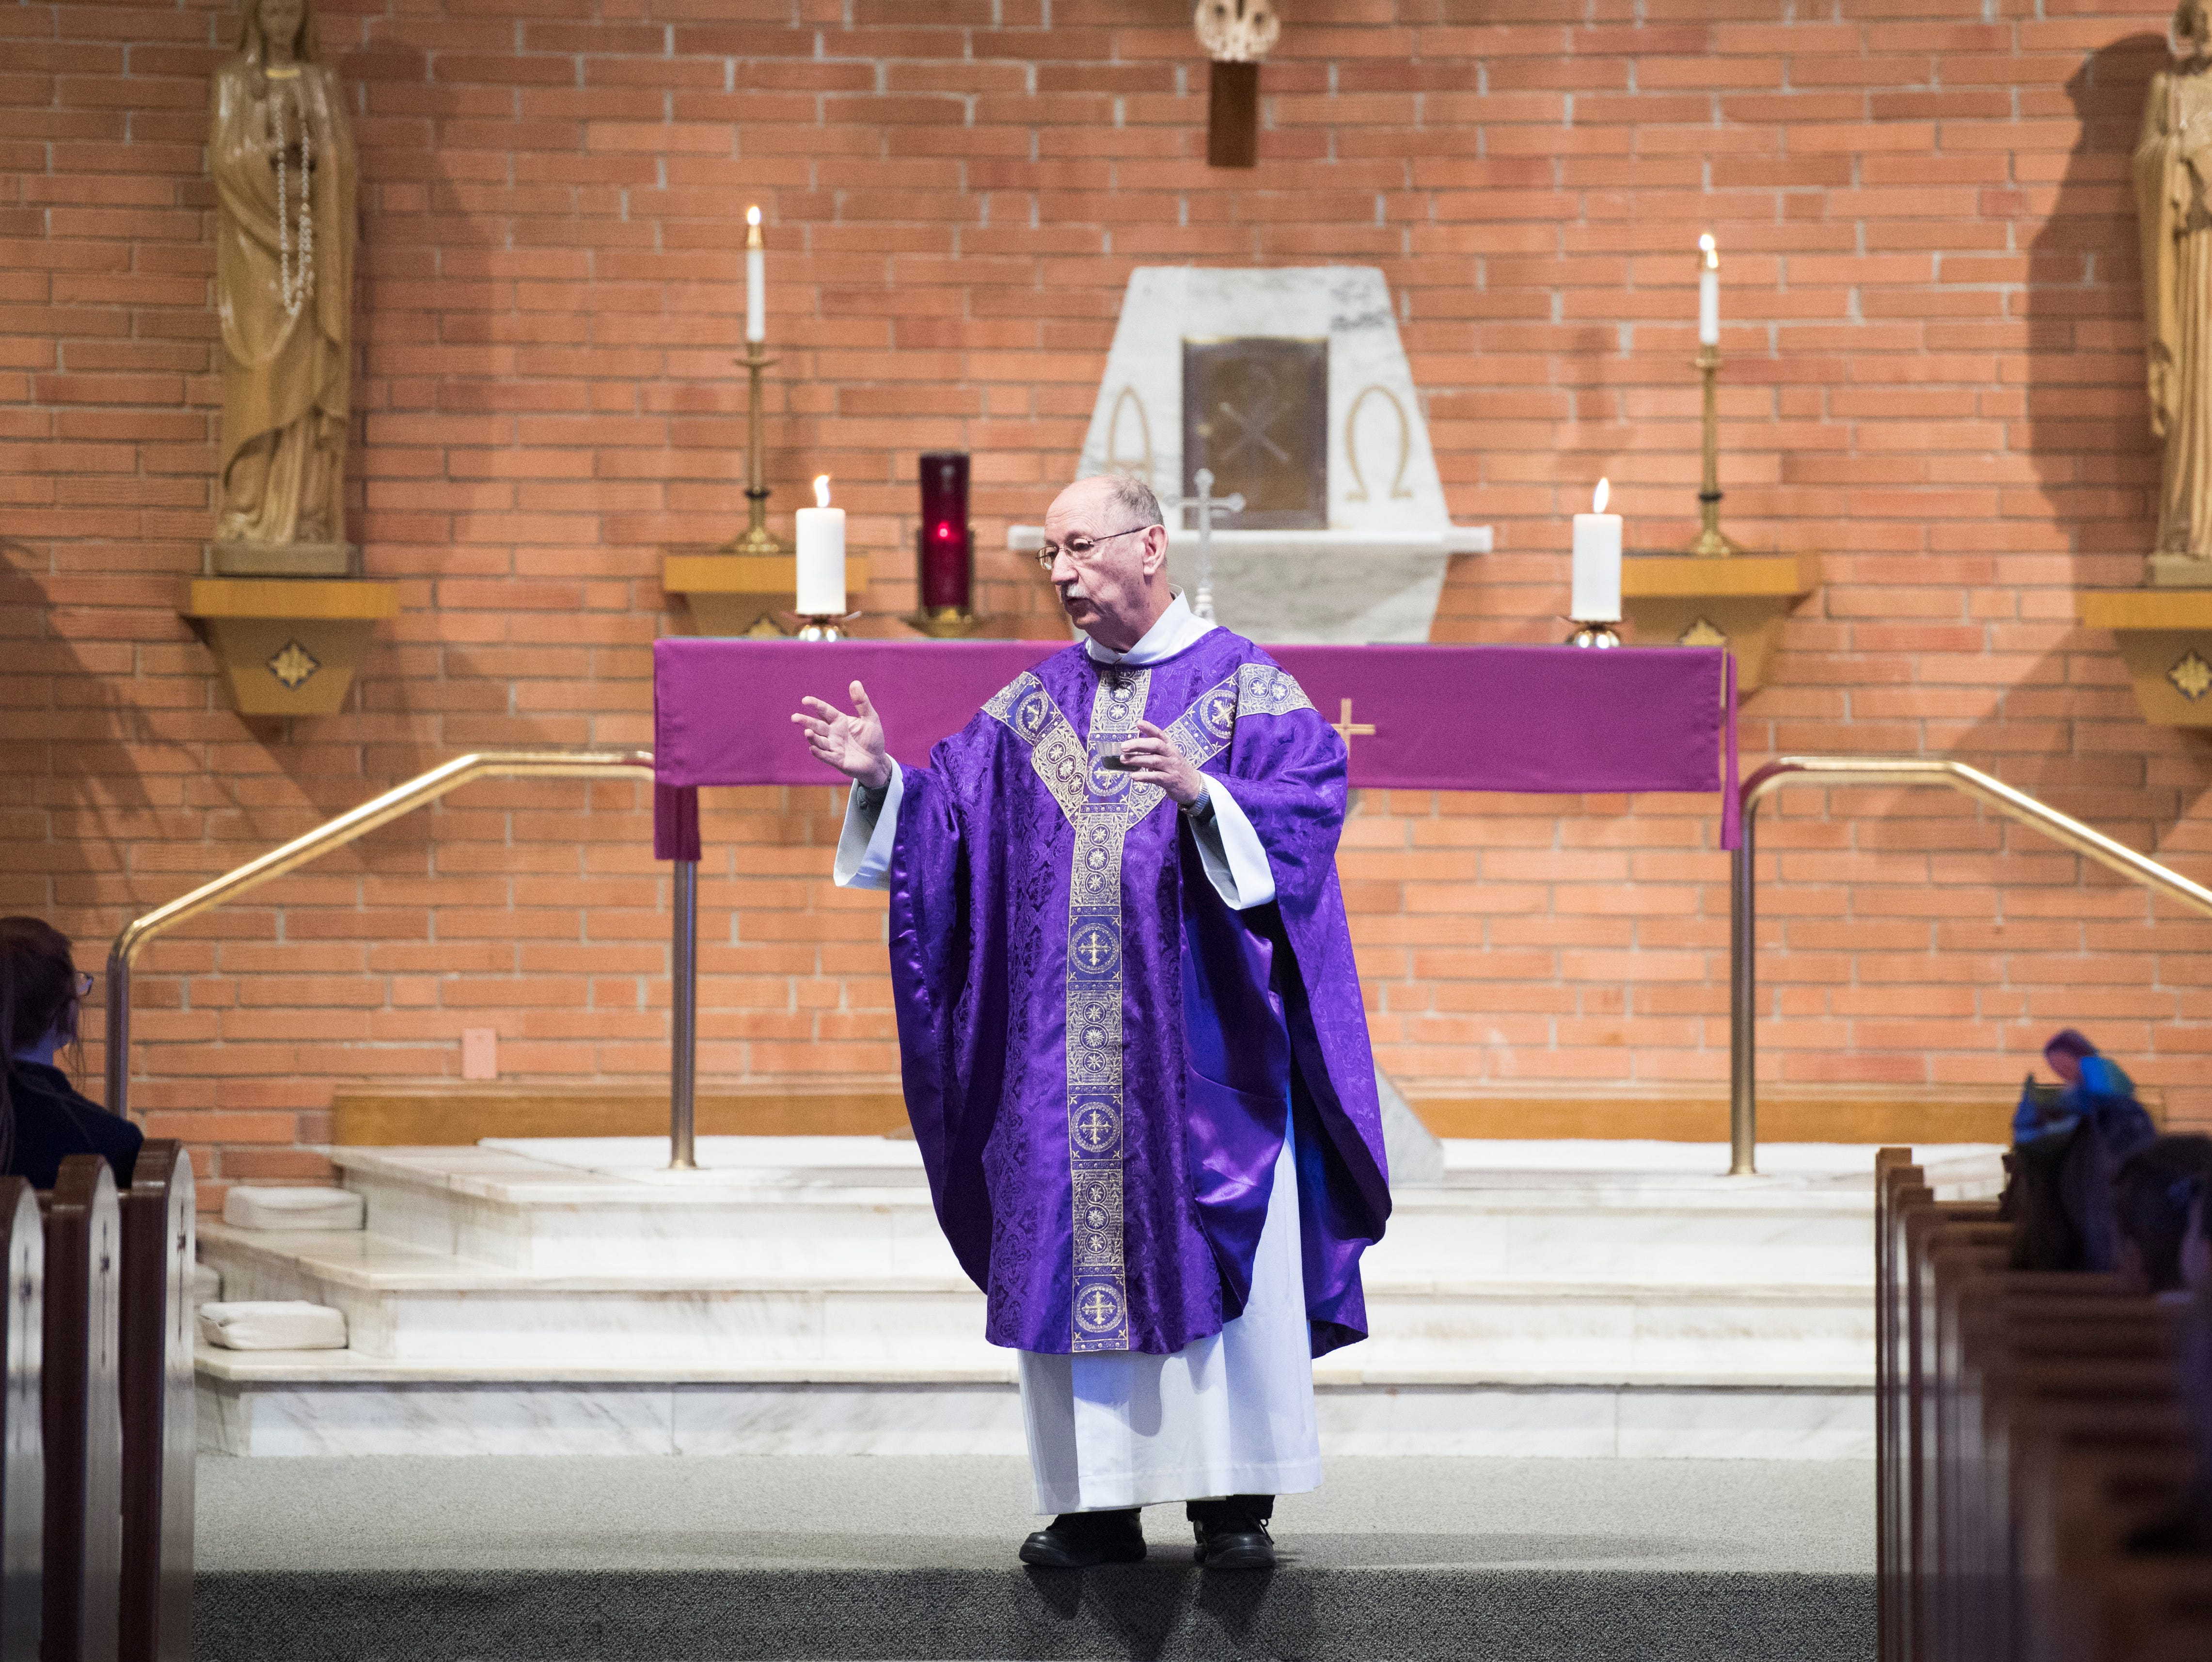 Rev. David H. Nunning speaks about the readings during the Ash Wednesday Mass at Corpus Christi Church Wednesday, March 6, 2019.